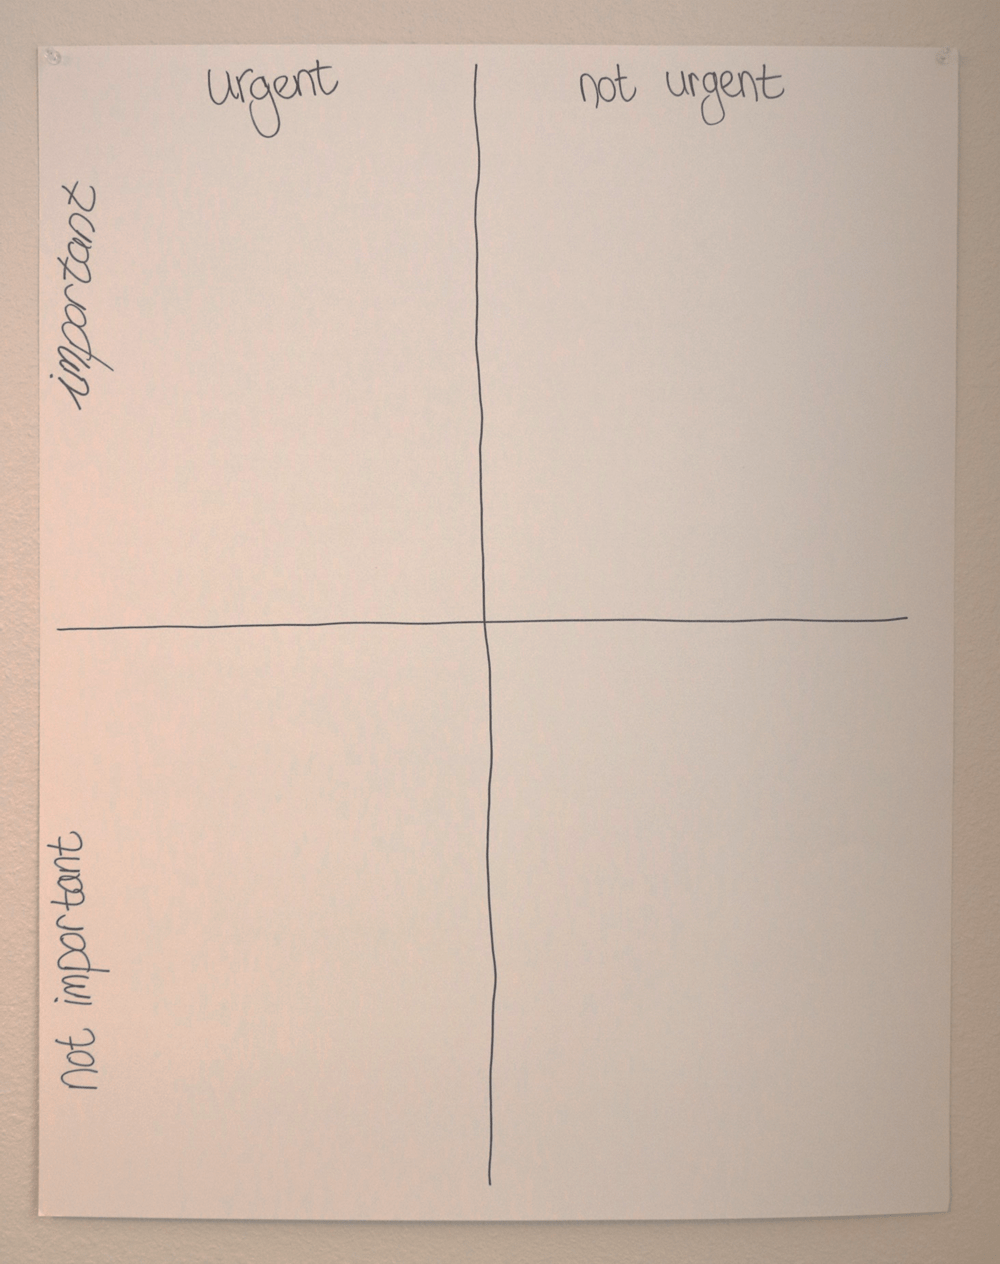 eisenhower matrix Be more Productive and set your Priorities for Today Printable